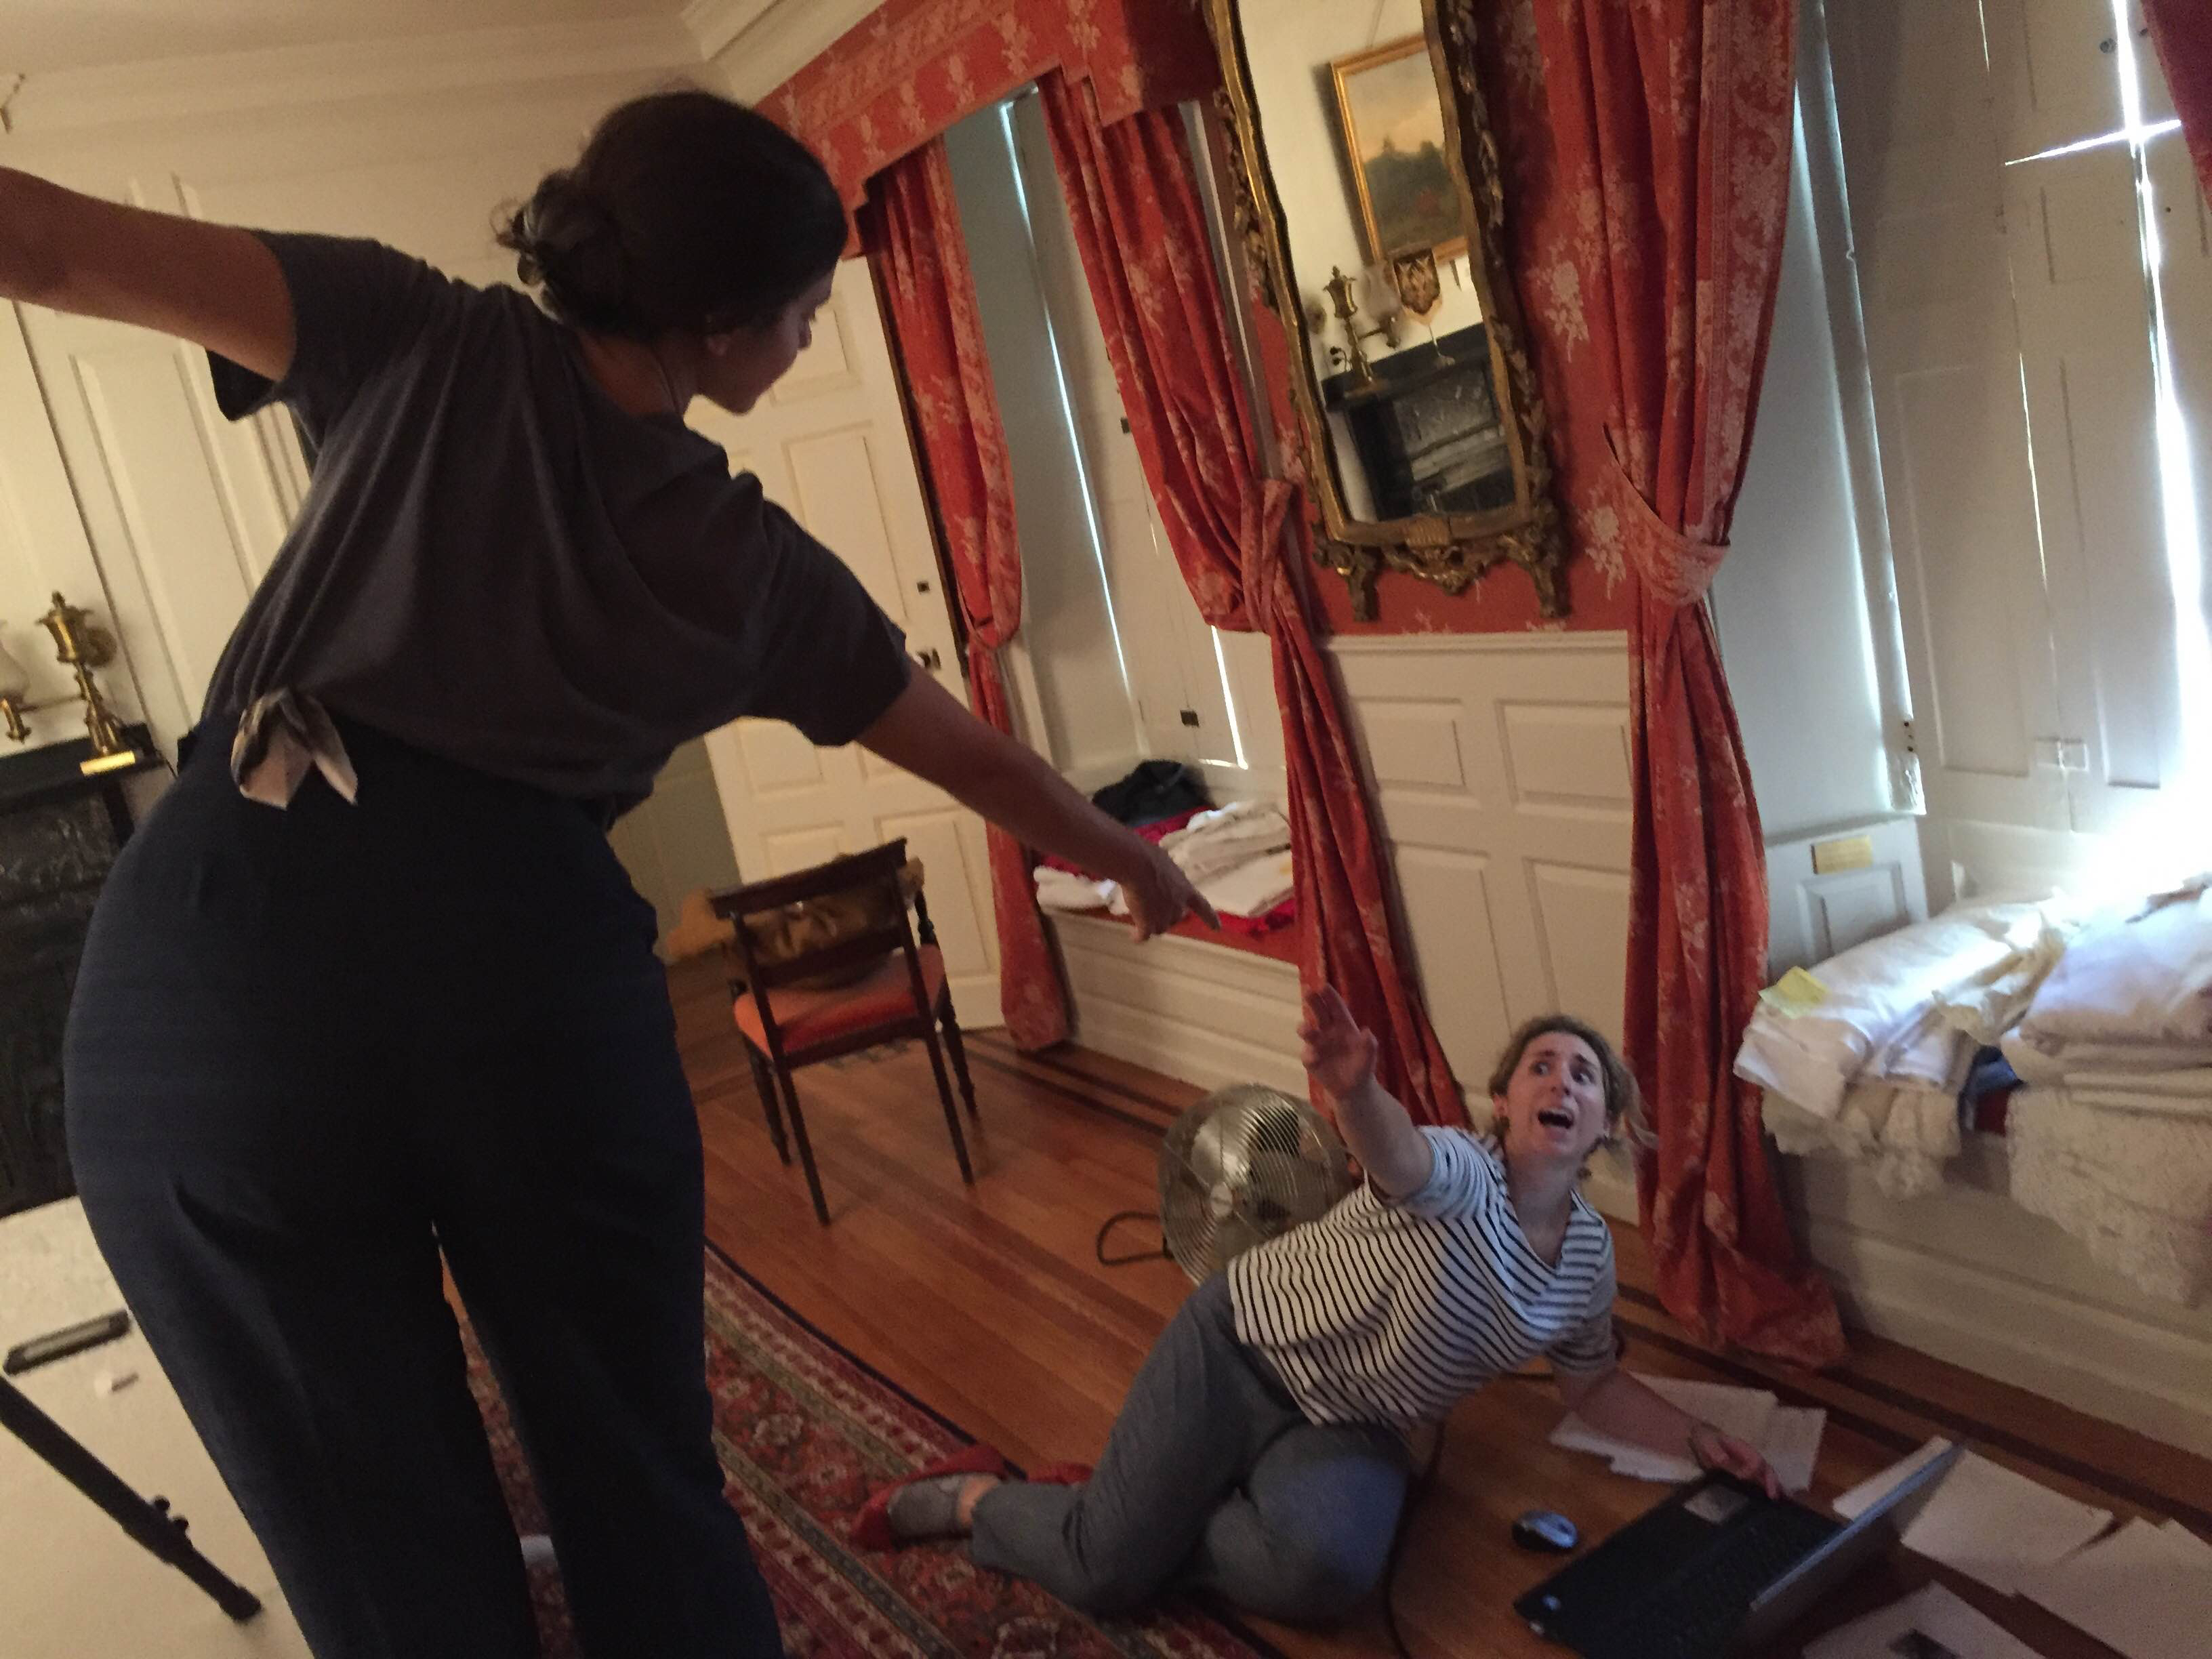 From atop the stepstool, Zoe passes the camera's memory card to a recumbent Claire